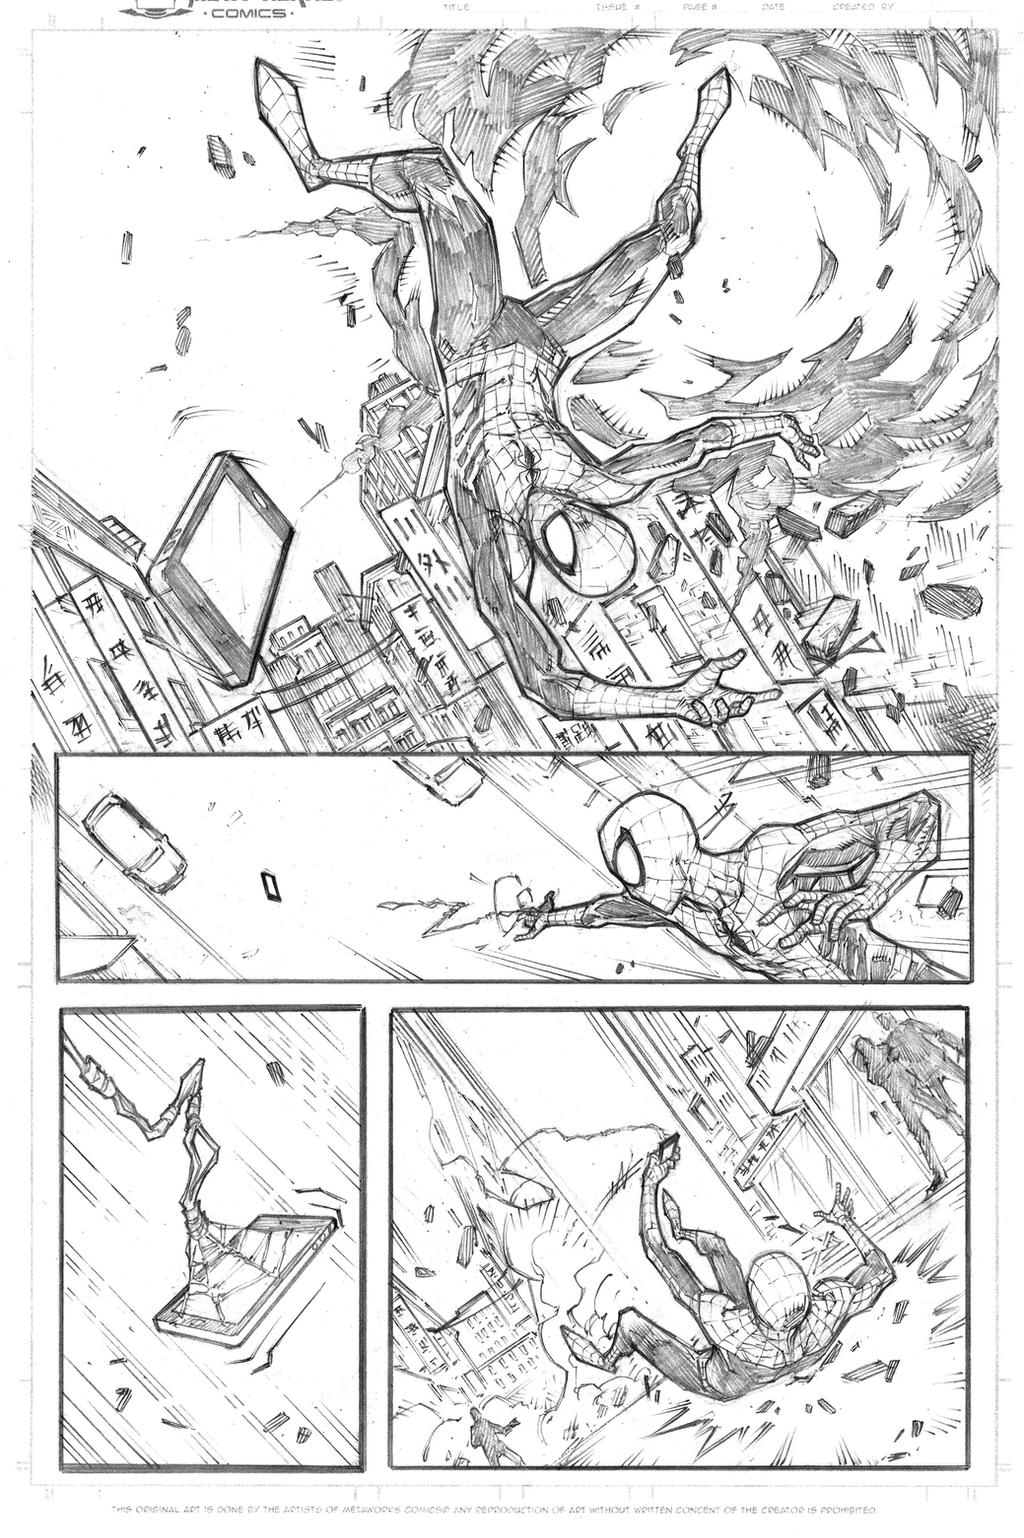 Marvel spidey sample page 1 pencils by JoeyVazquez